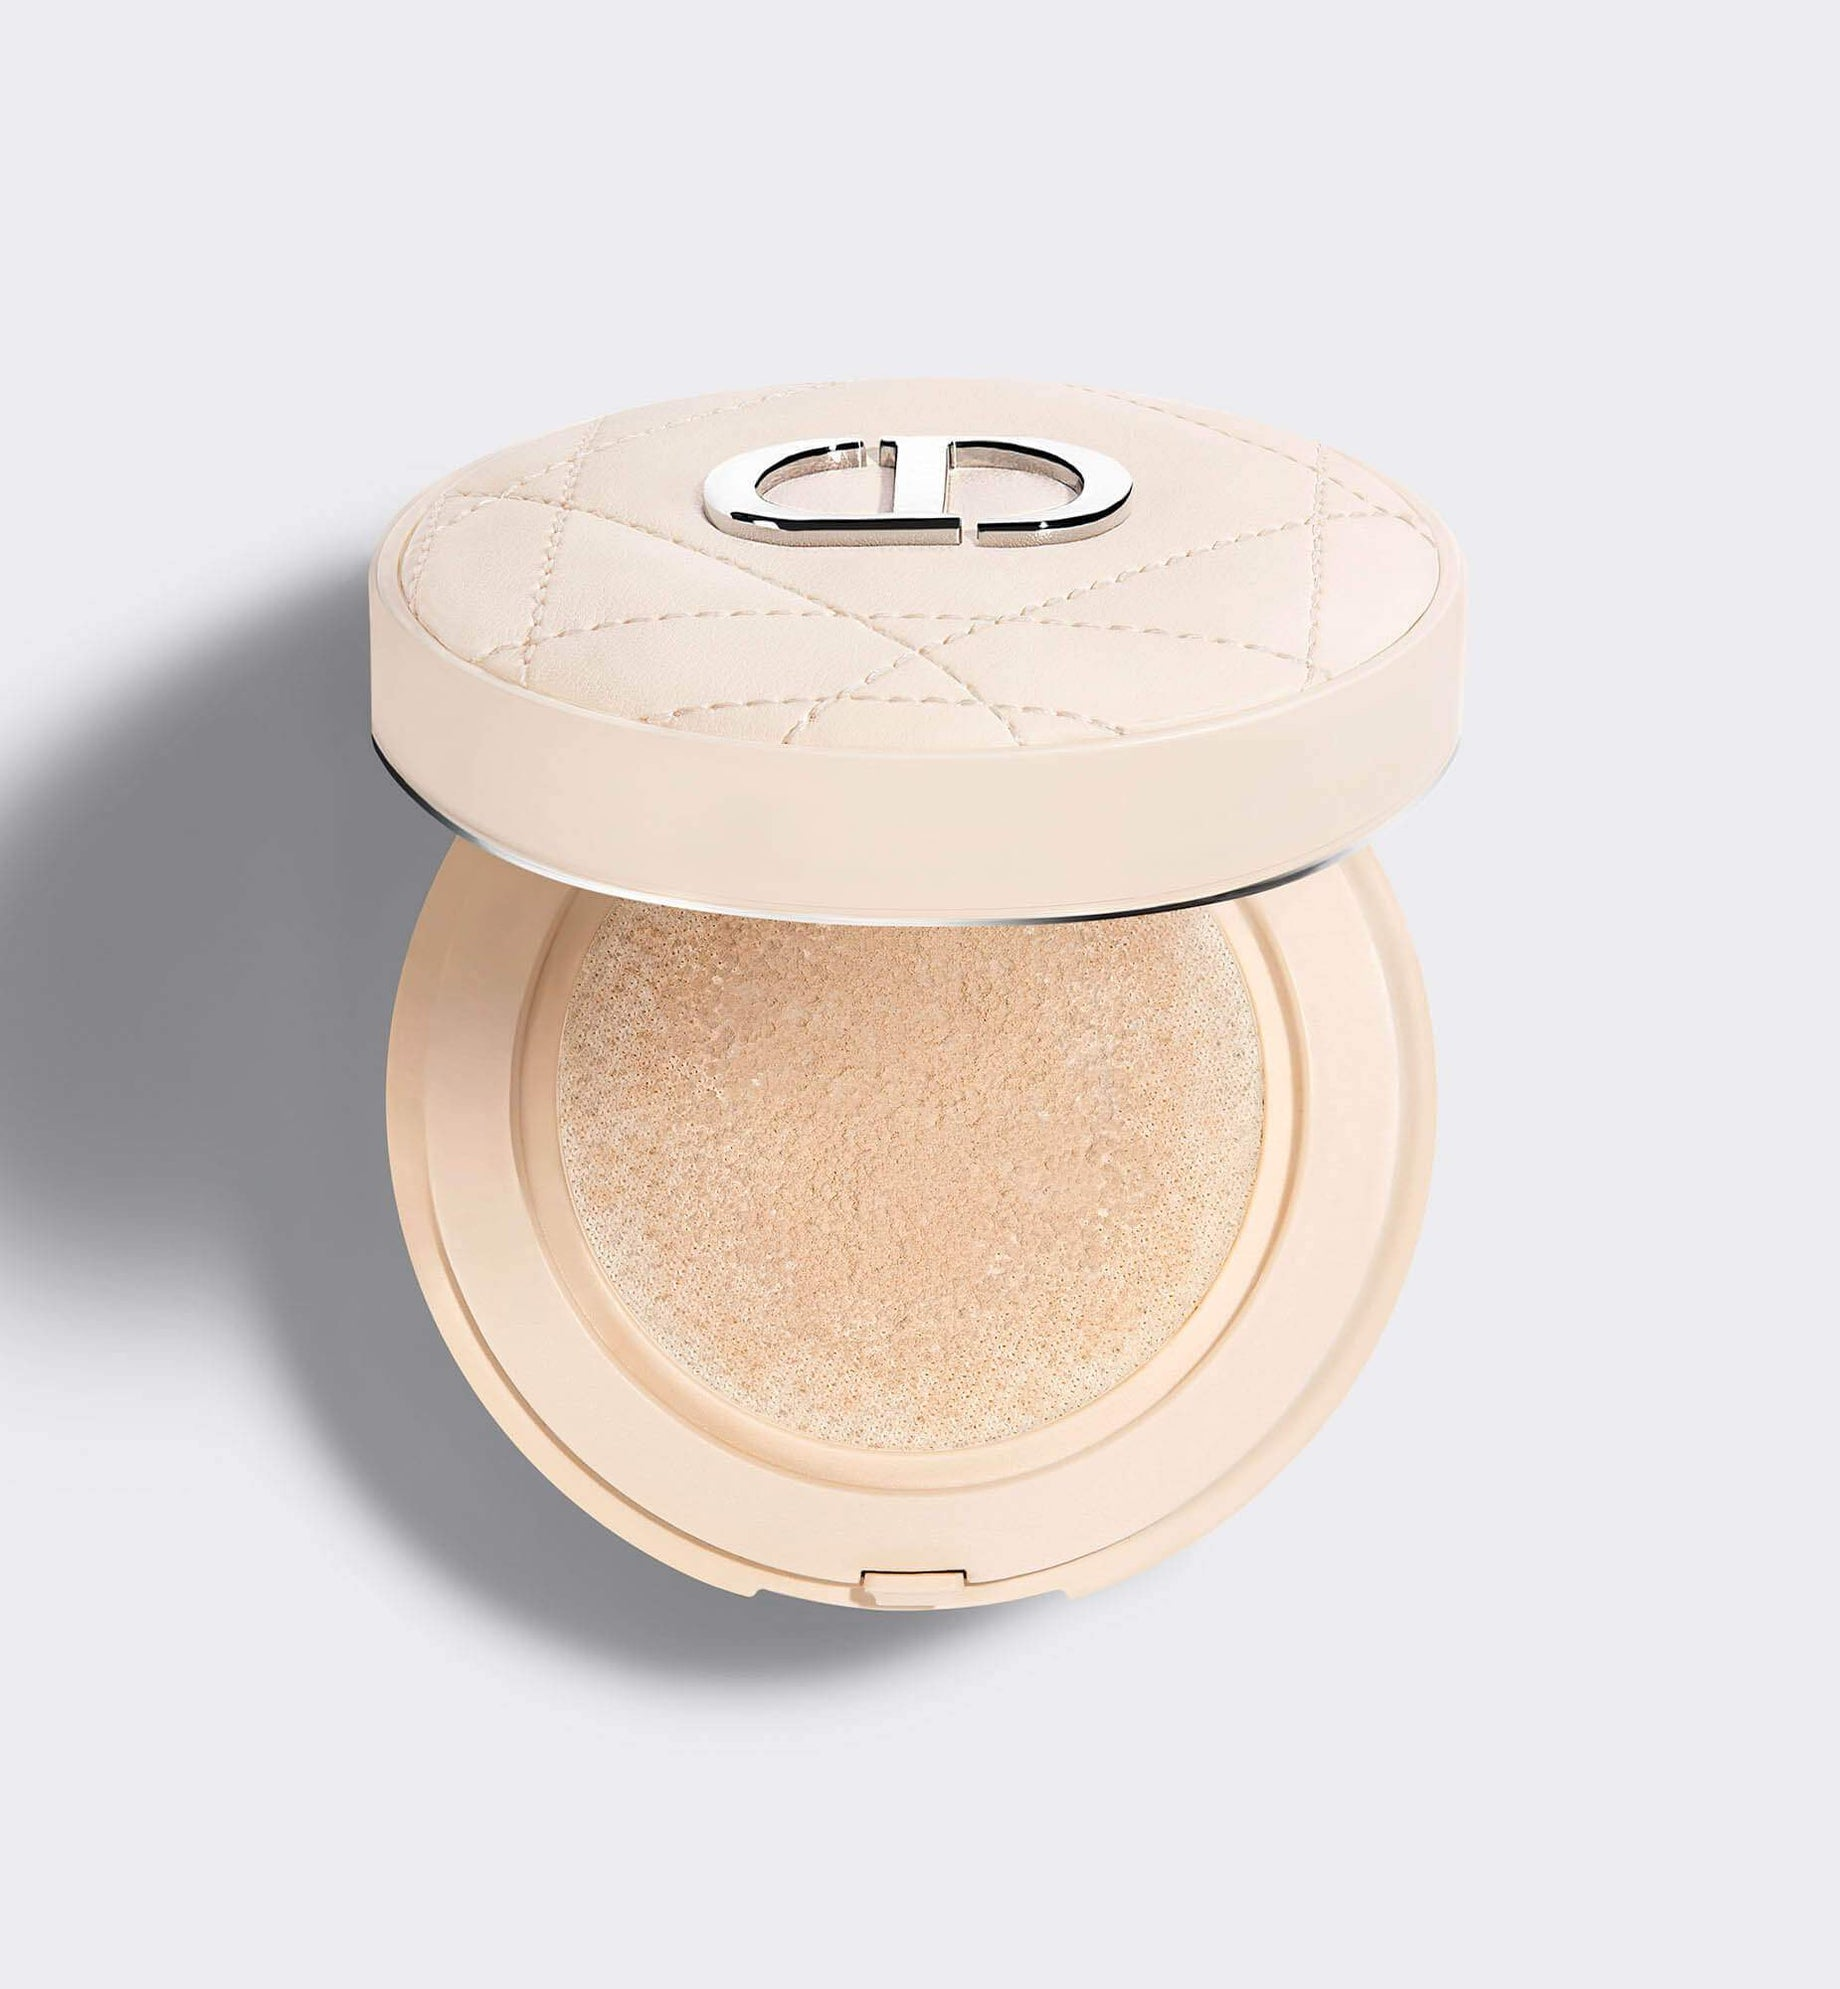 Dior Forever Cushion Powder